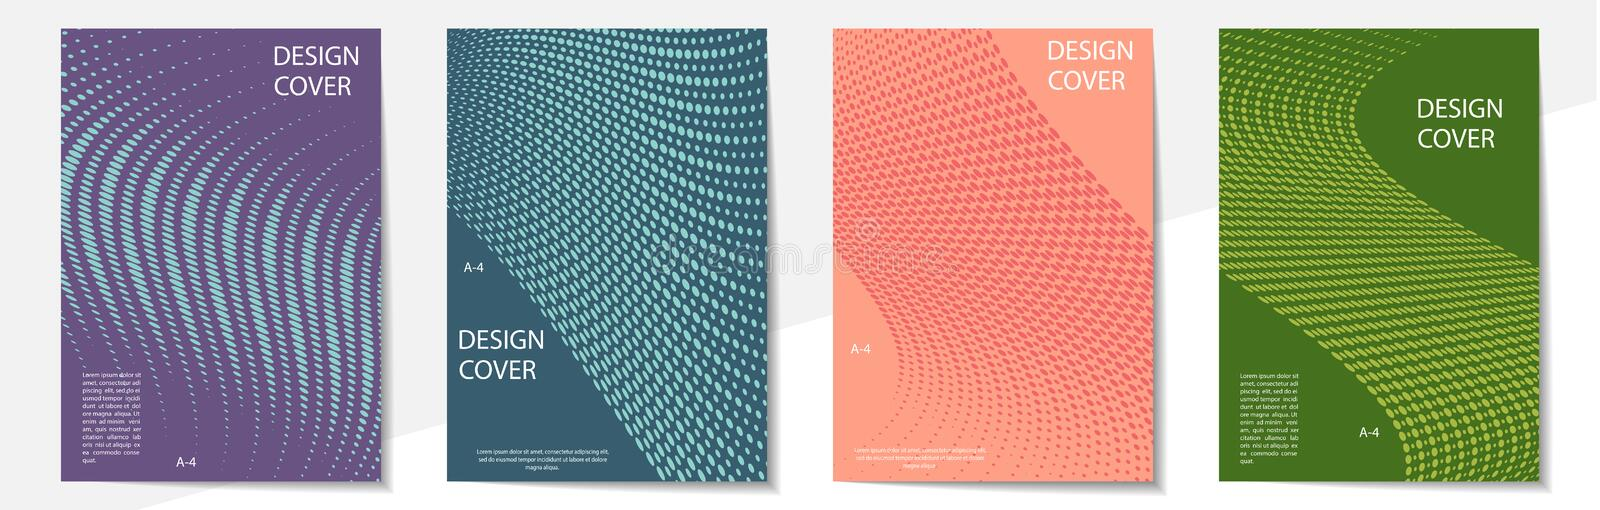 Geometric cover design templates A-4 format. Editable set of layouts for covers of books, magazines, notebooks, albums, booklets. Flat design, modern colors royalty free illustration